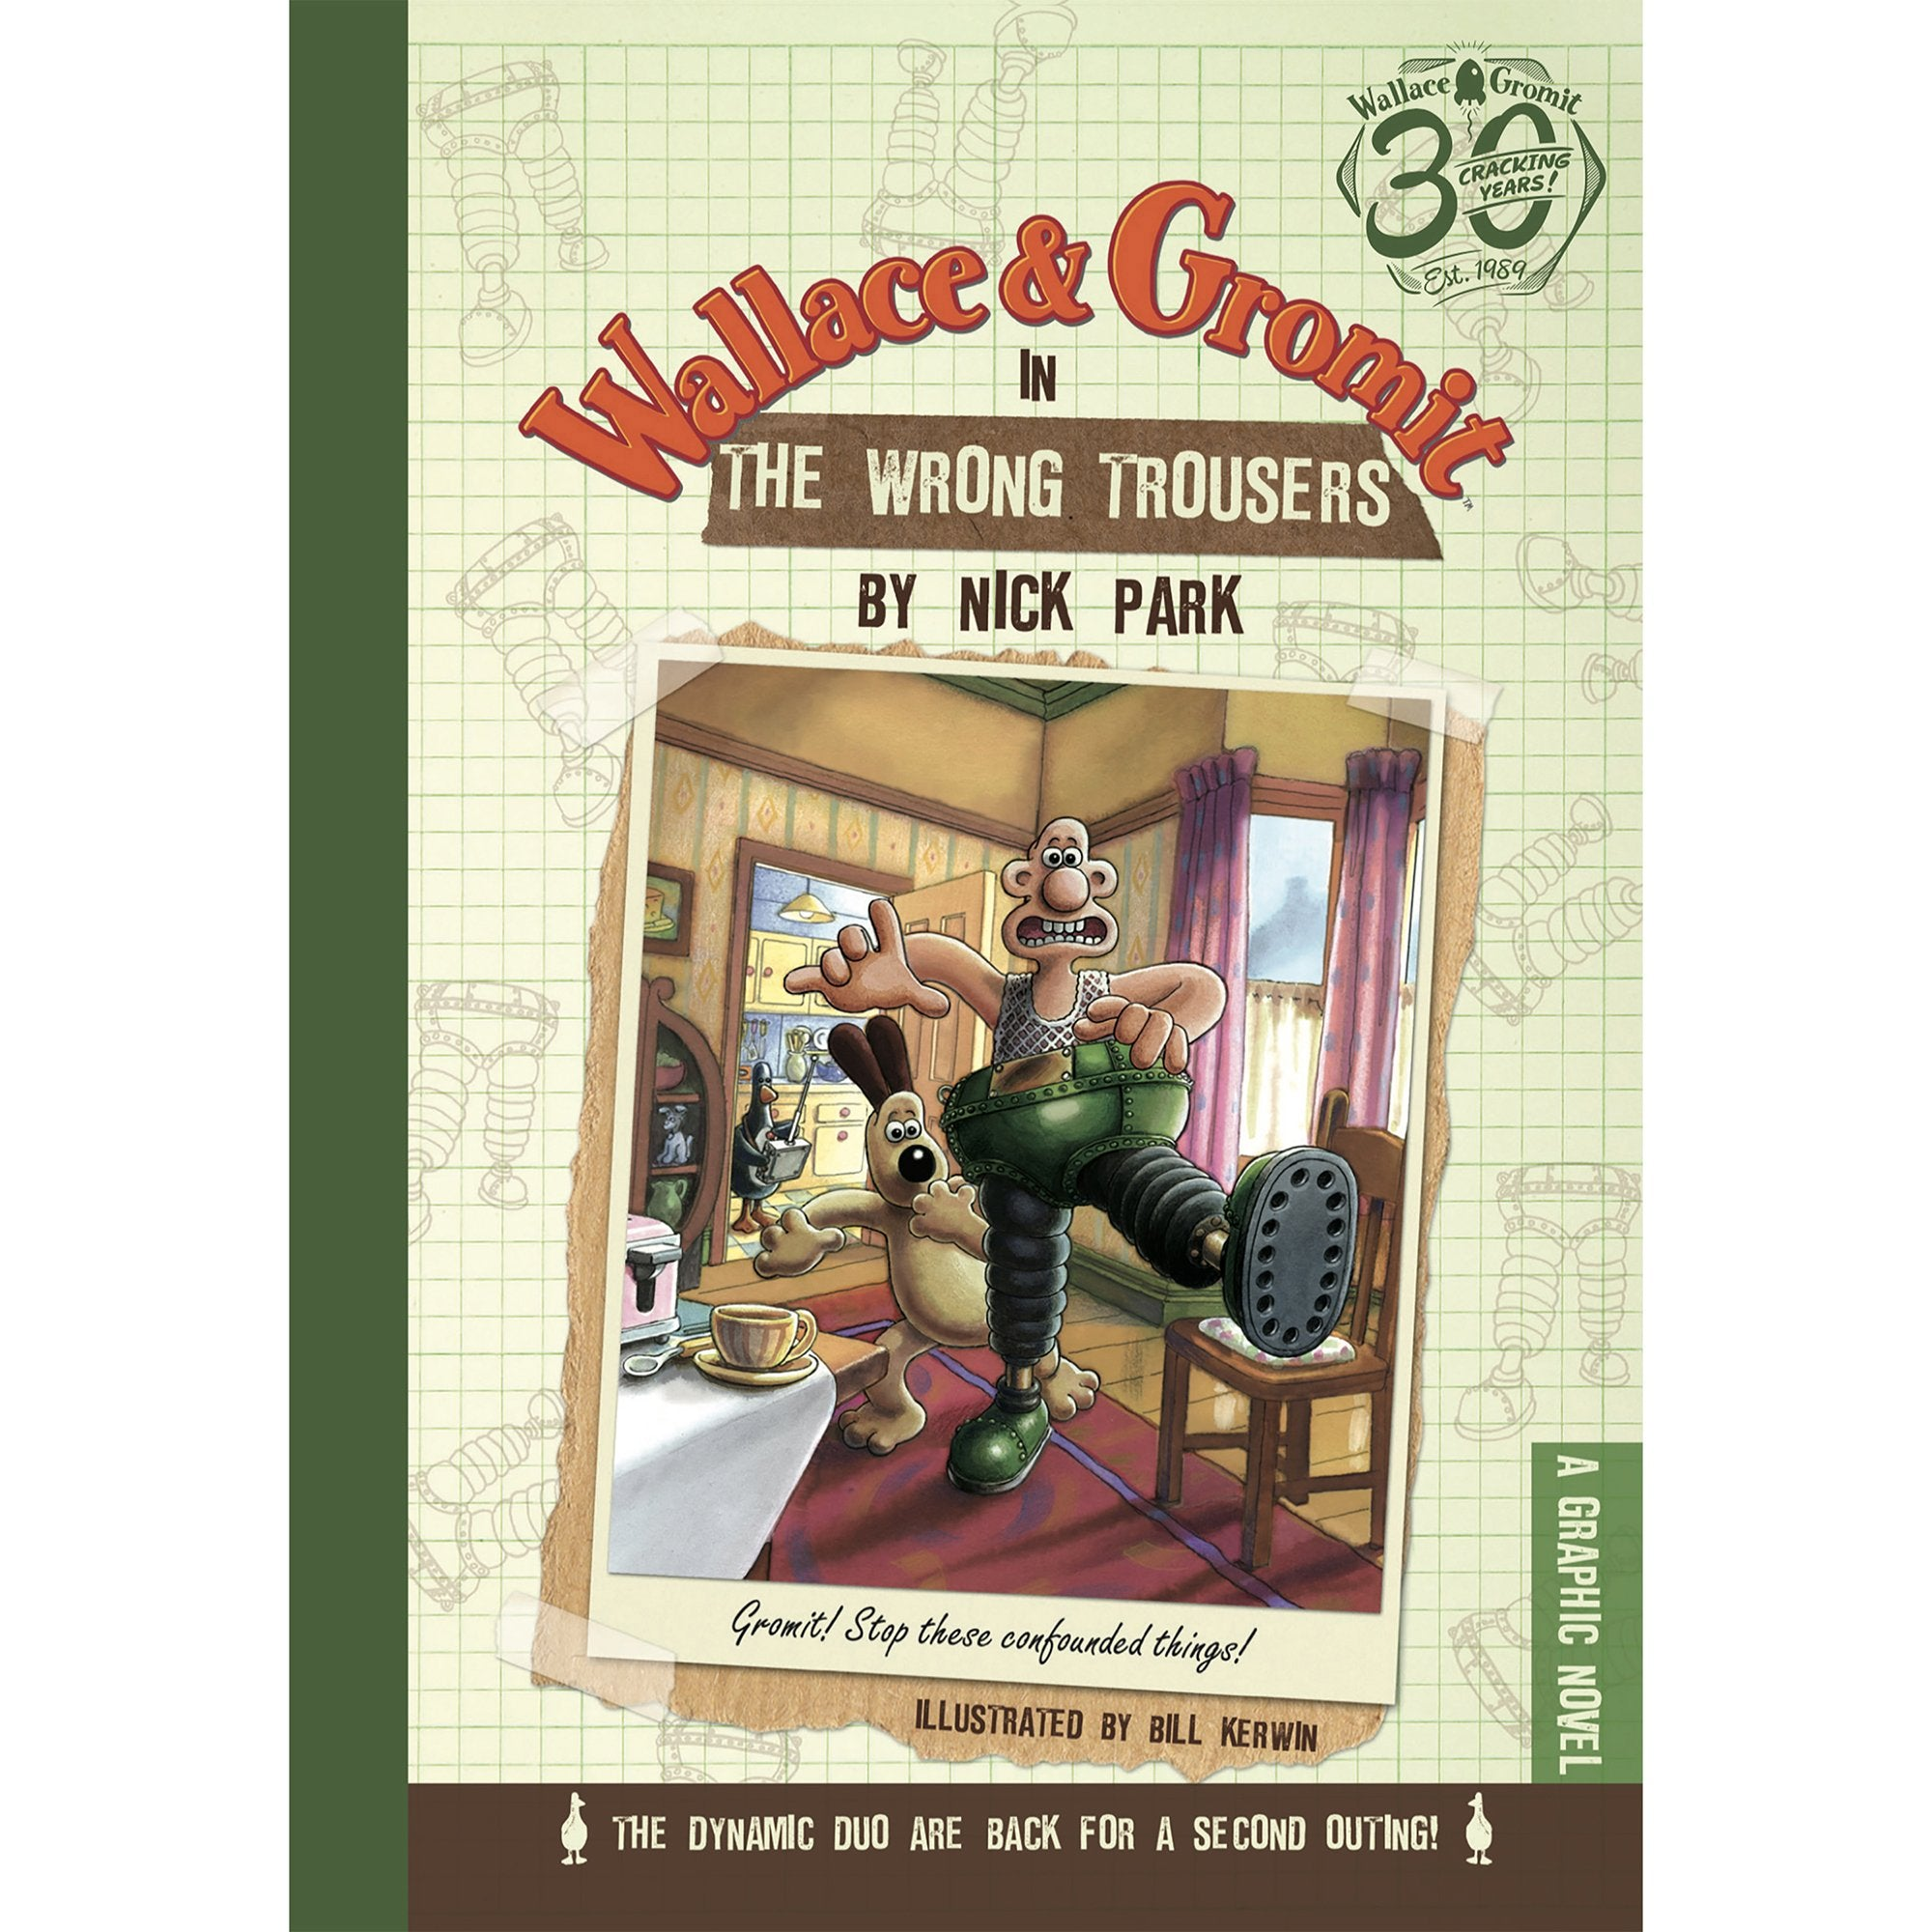 Wallace & Gromit Book & Mug Giftset - The Wrong Trousers - Half Moon Bay US